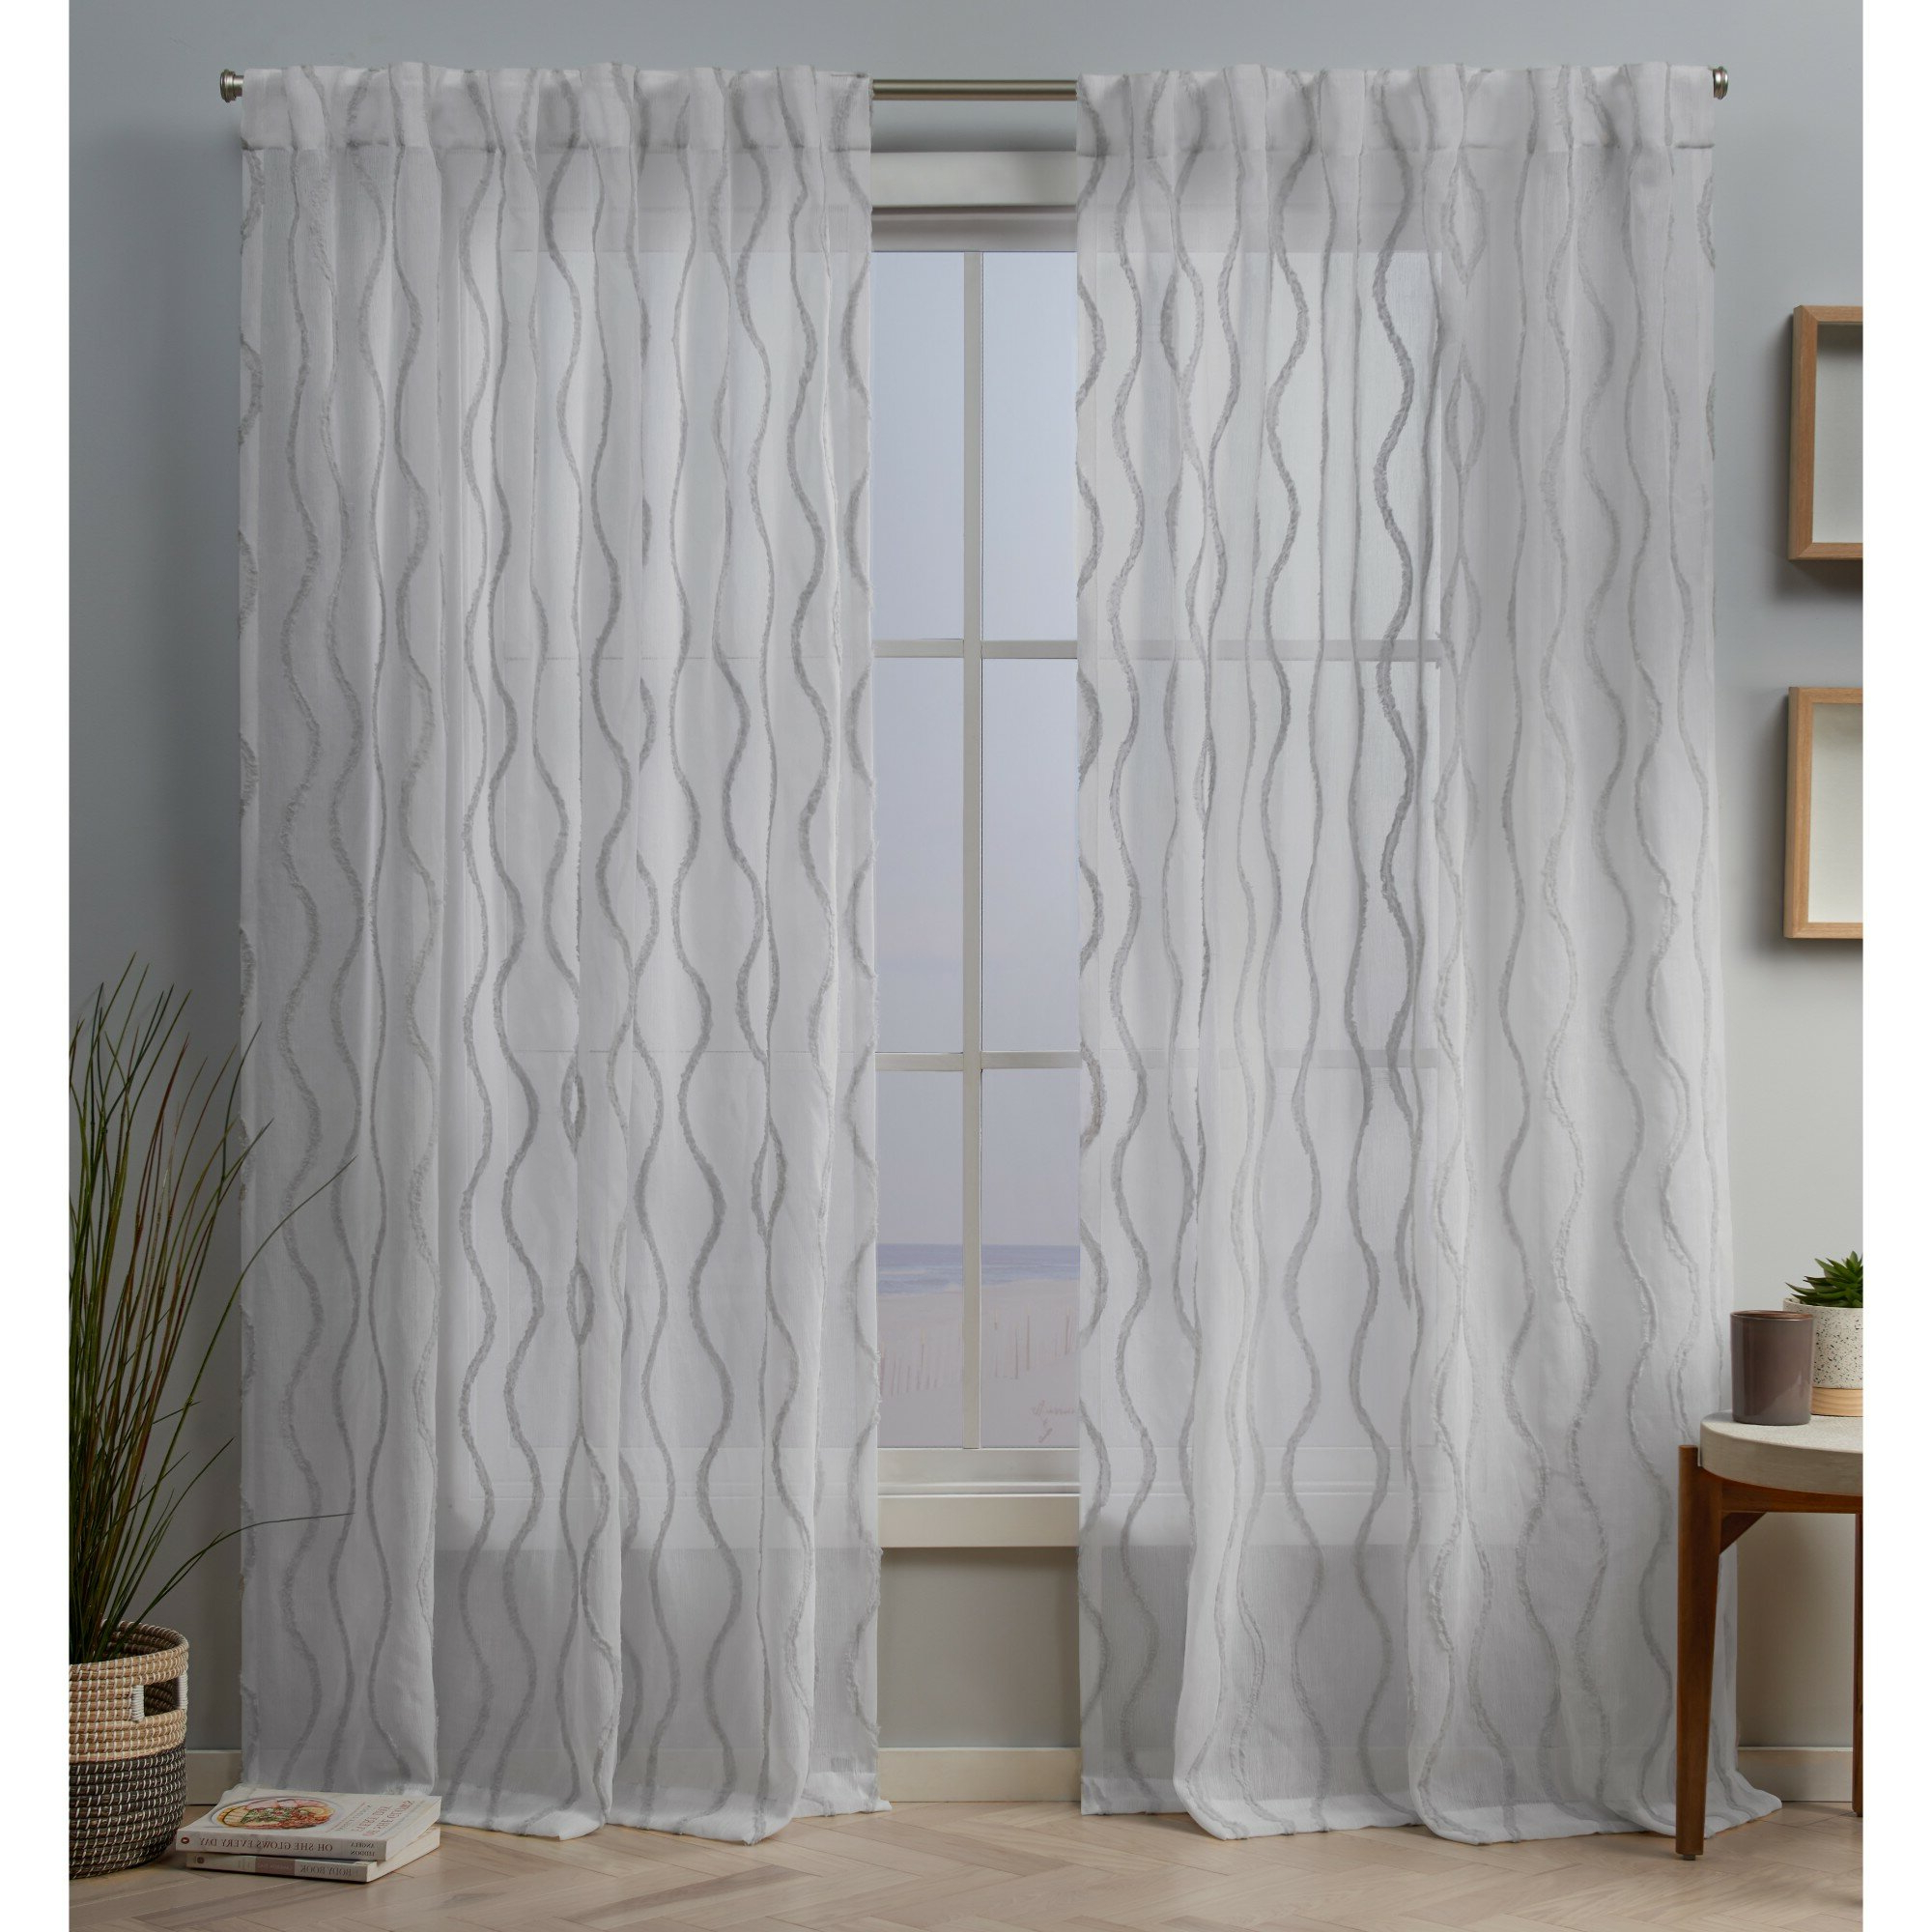 Recent Hulda Sheer Tab Top Panel Pair Pertaining To Twig Insulated Blackout Curtain Panel Pairs With Grommet Top (View 17 of 20)